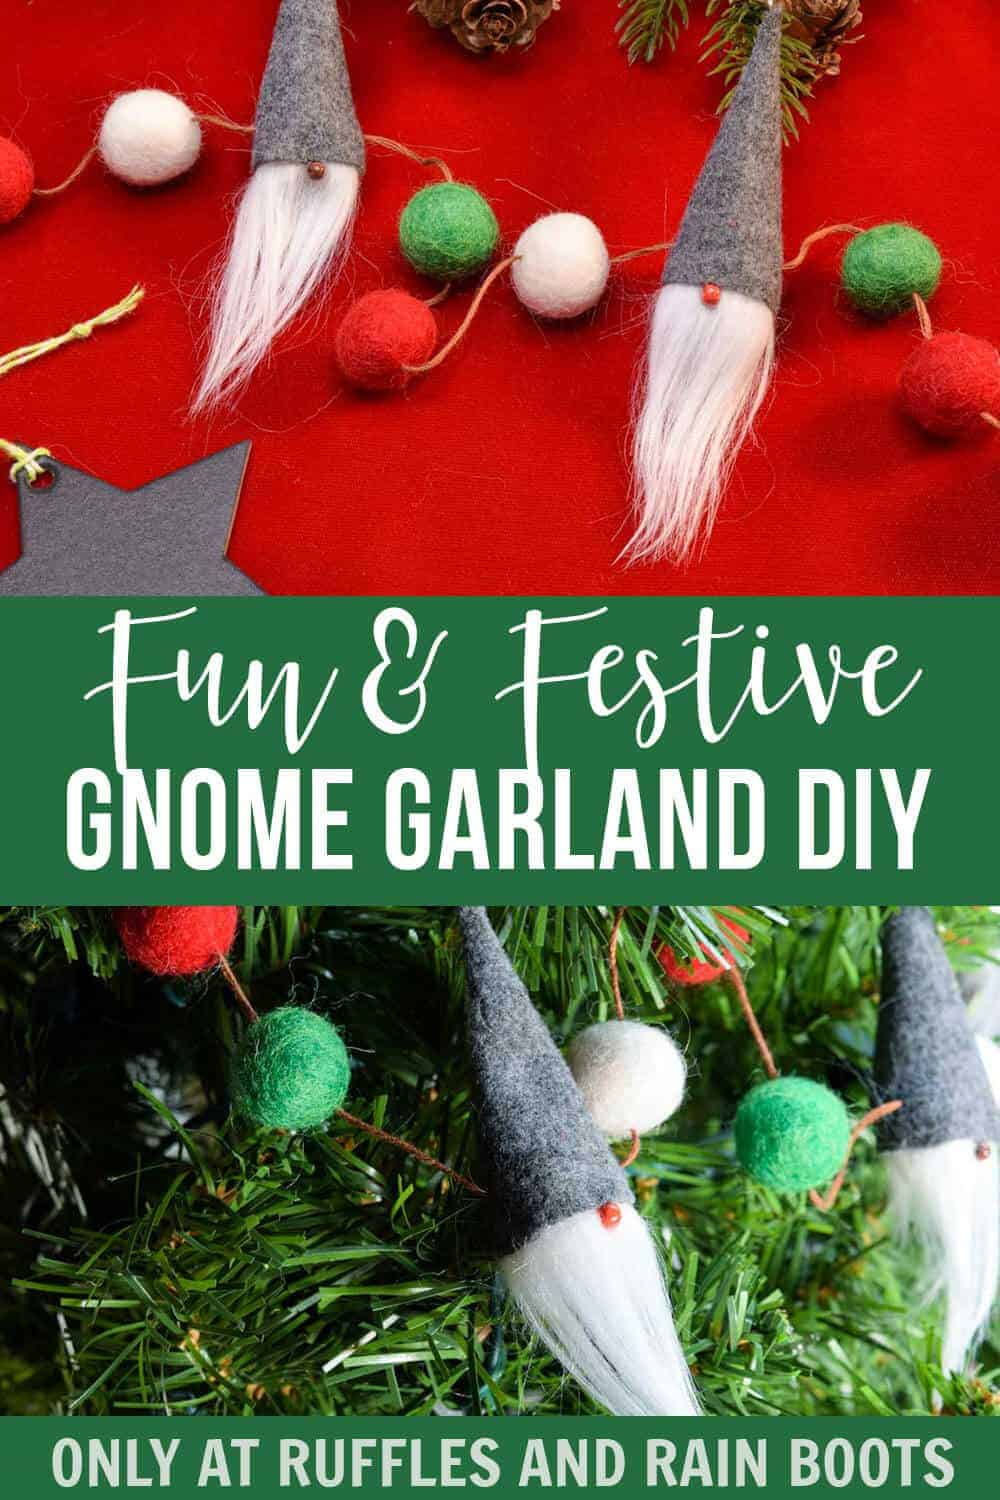 photo collage of Festive Gnome Garland at Ruffles and Rain Boots with text which reads fun & festive gnome garland diy